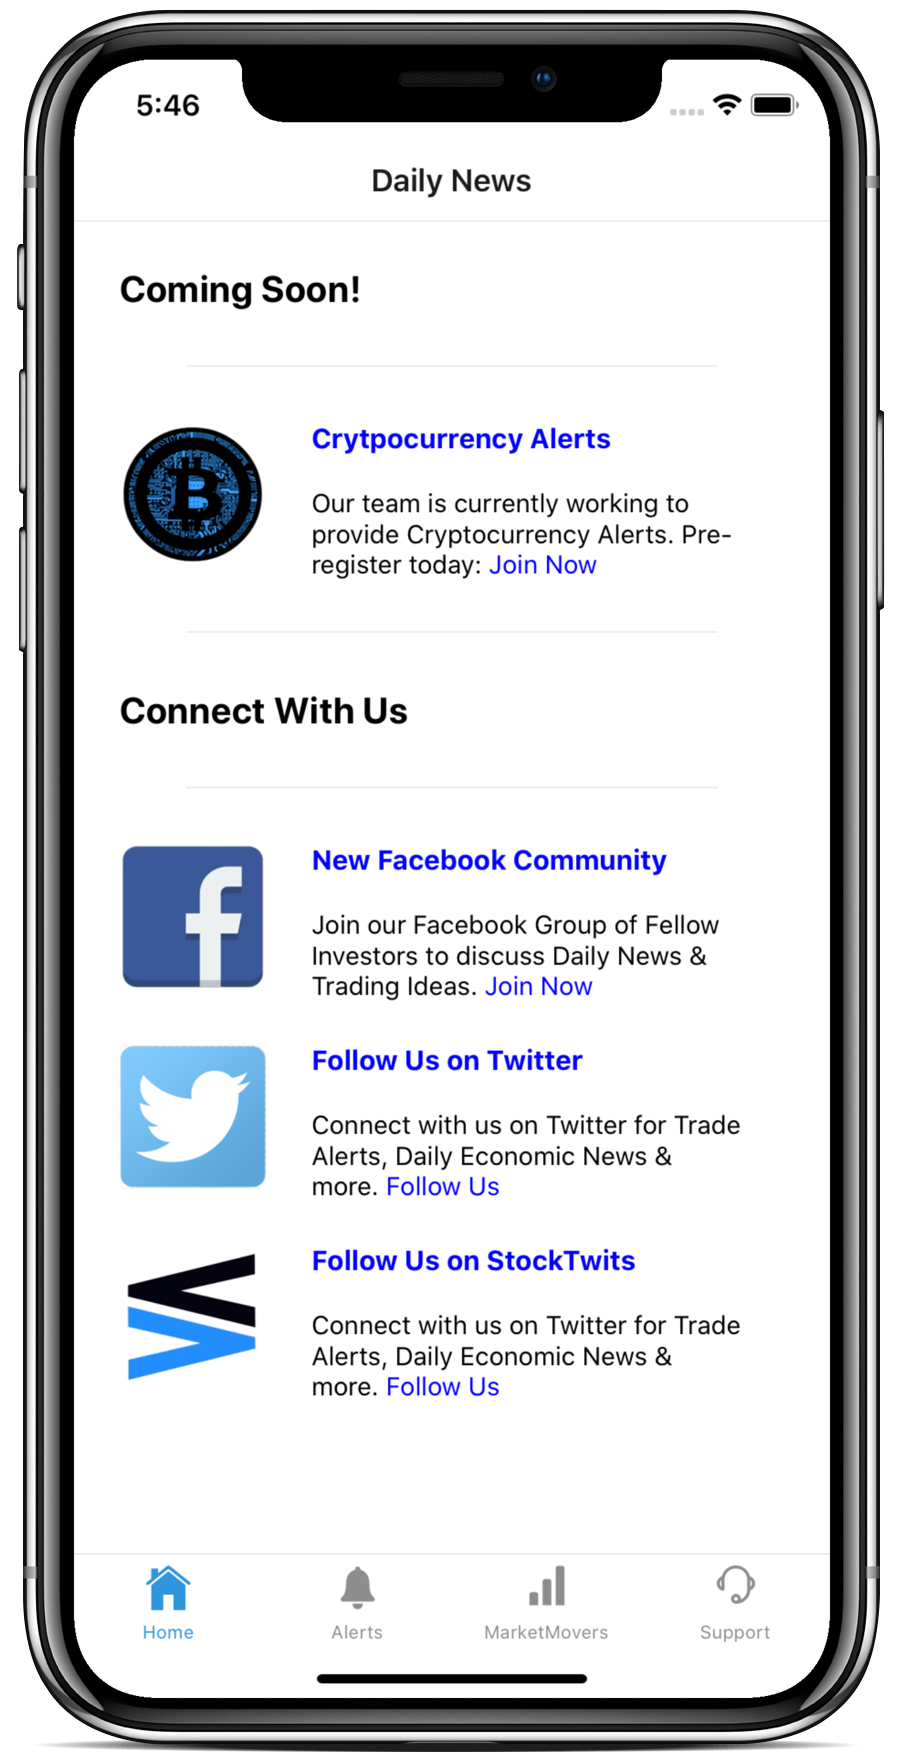 Millennial Investments - Daily Trade Alerts Mobile App